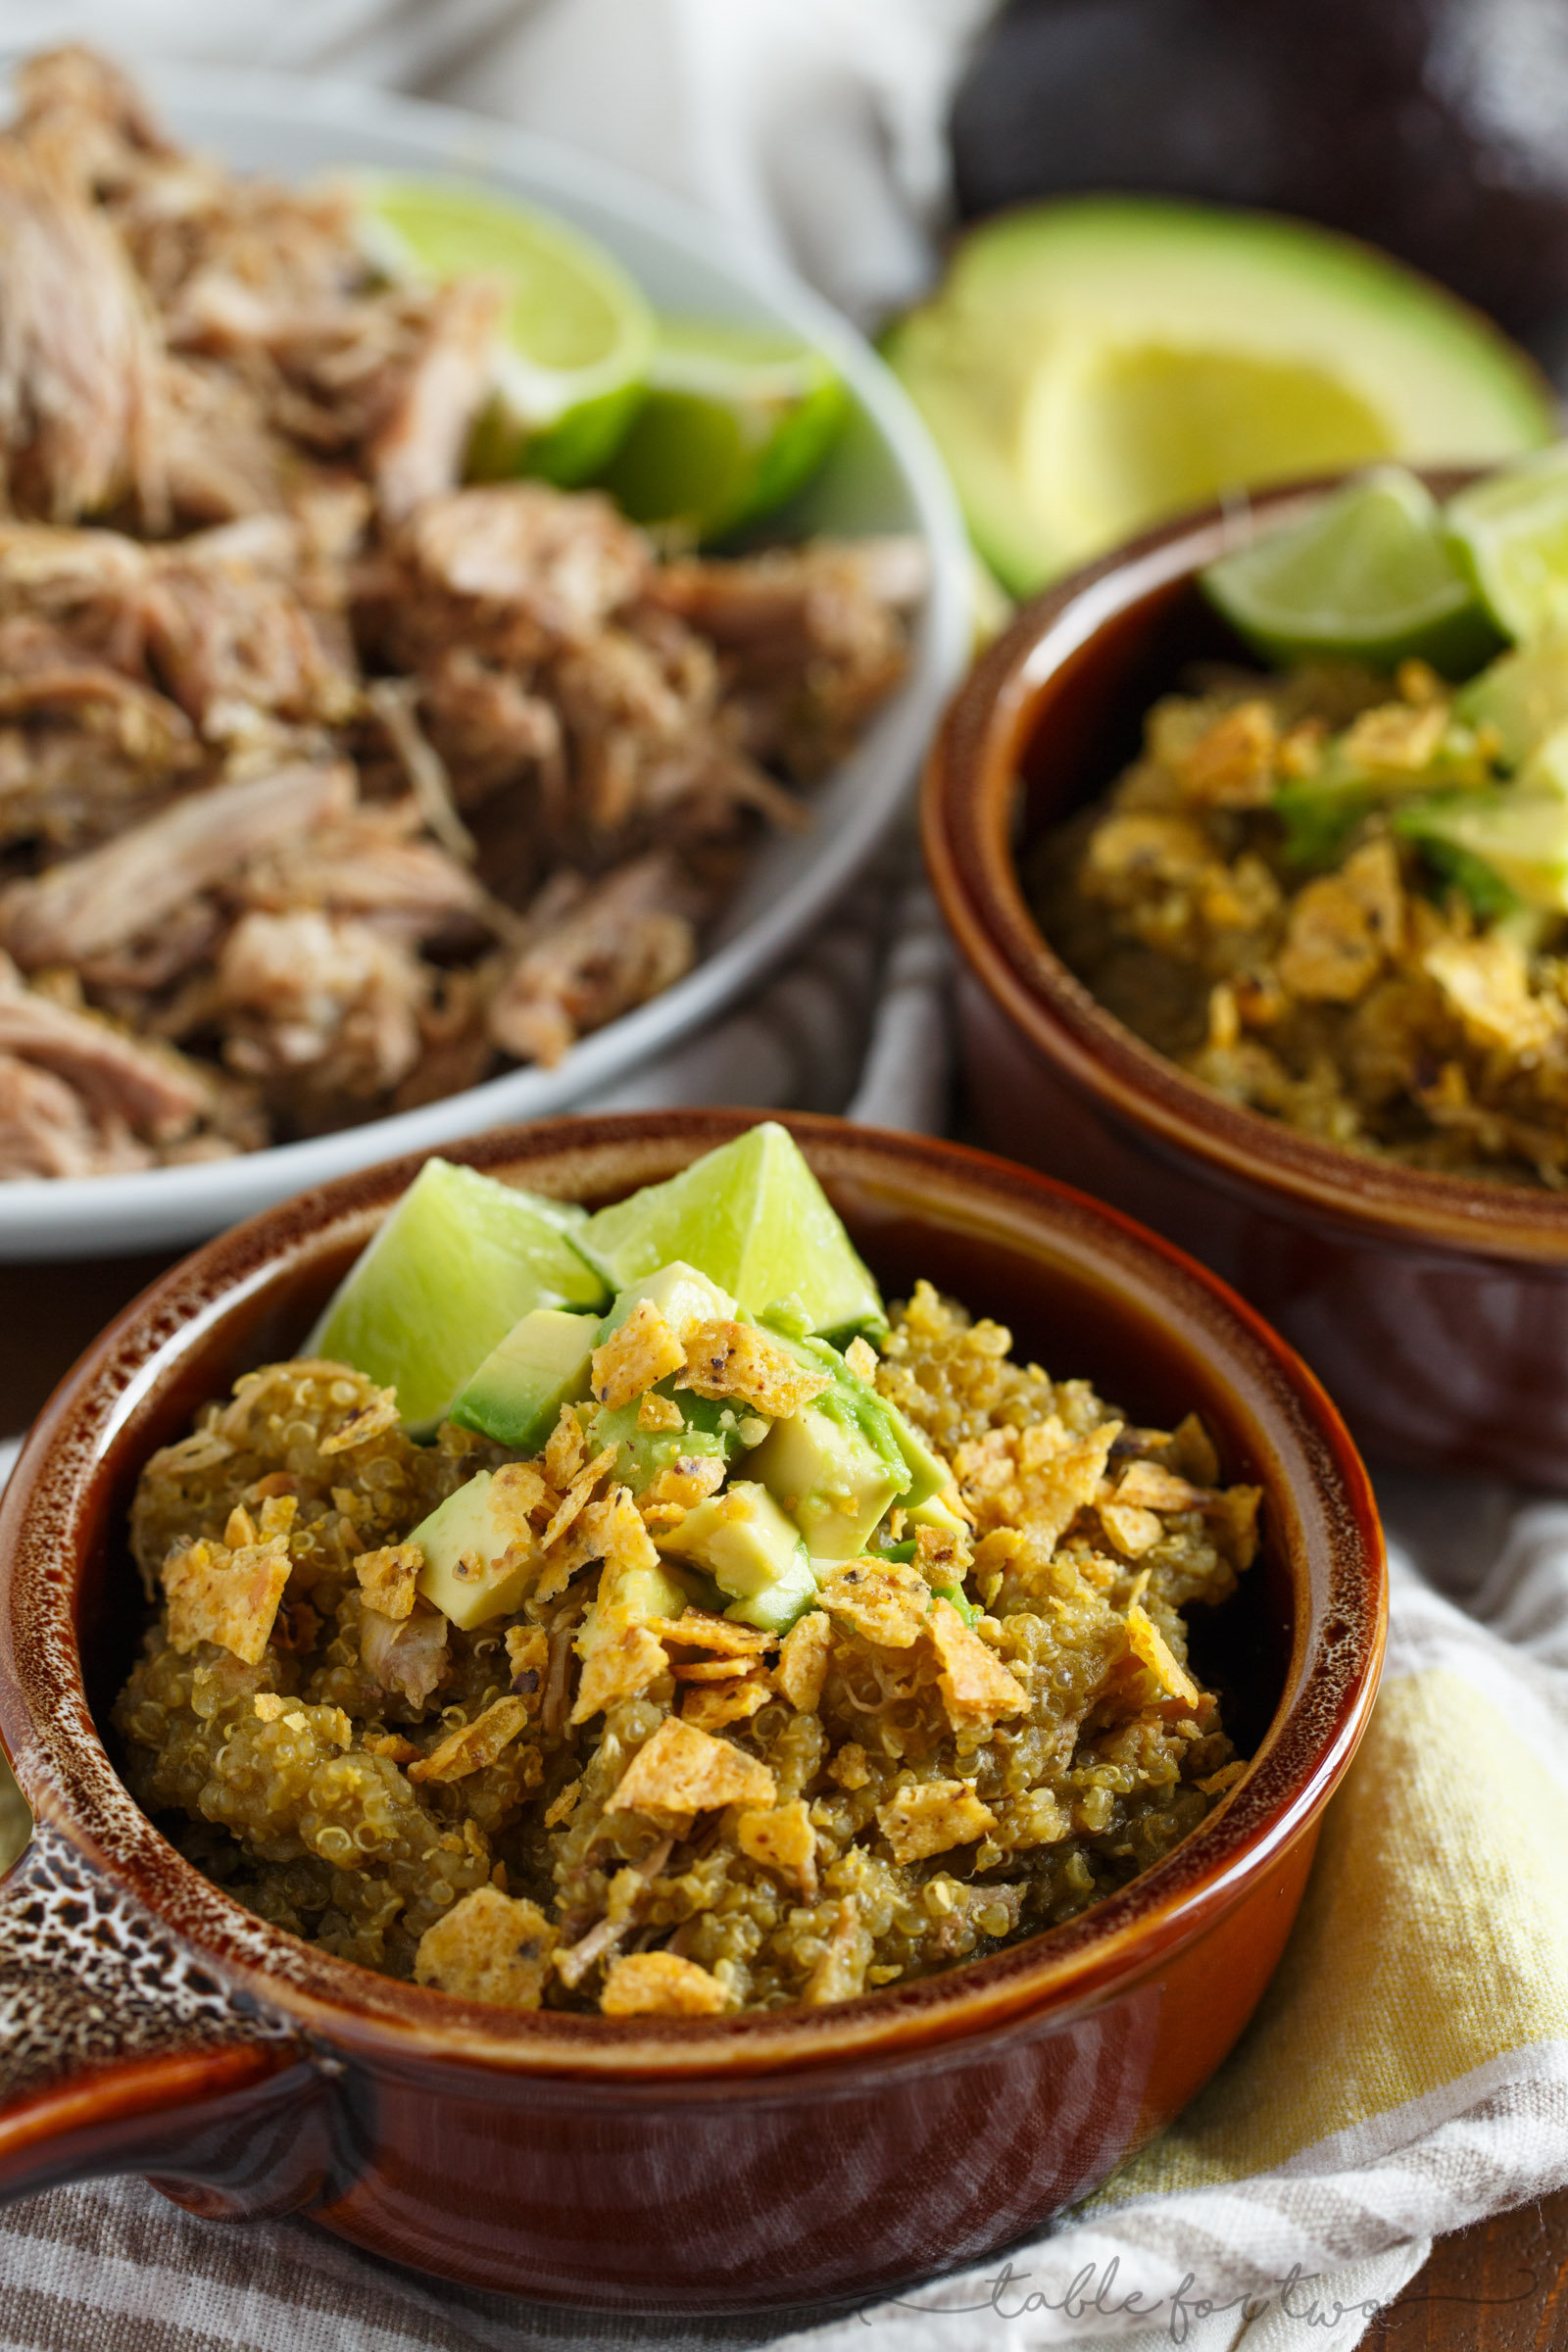 A low-effort weeknight meal with lots of flavor! Slow cooker poblano and tomatillo shredded pork and quinoa is a dish your family will love! The leftovers taste even better after the flavors meld even more! This can even be made in your pressure cooker!